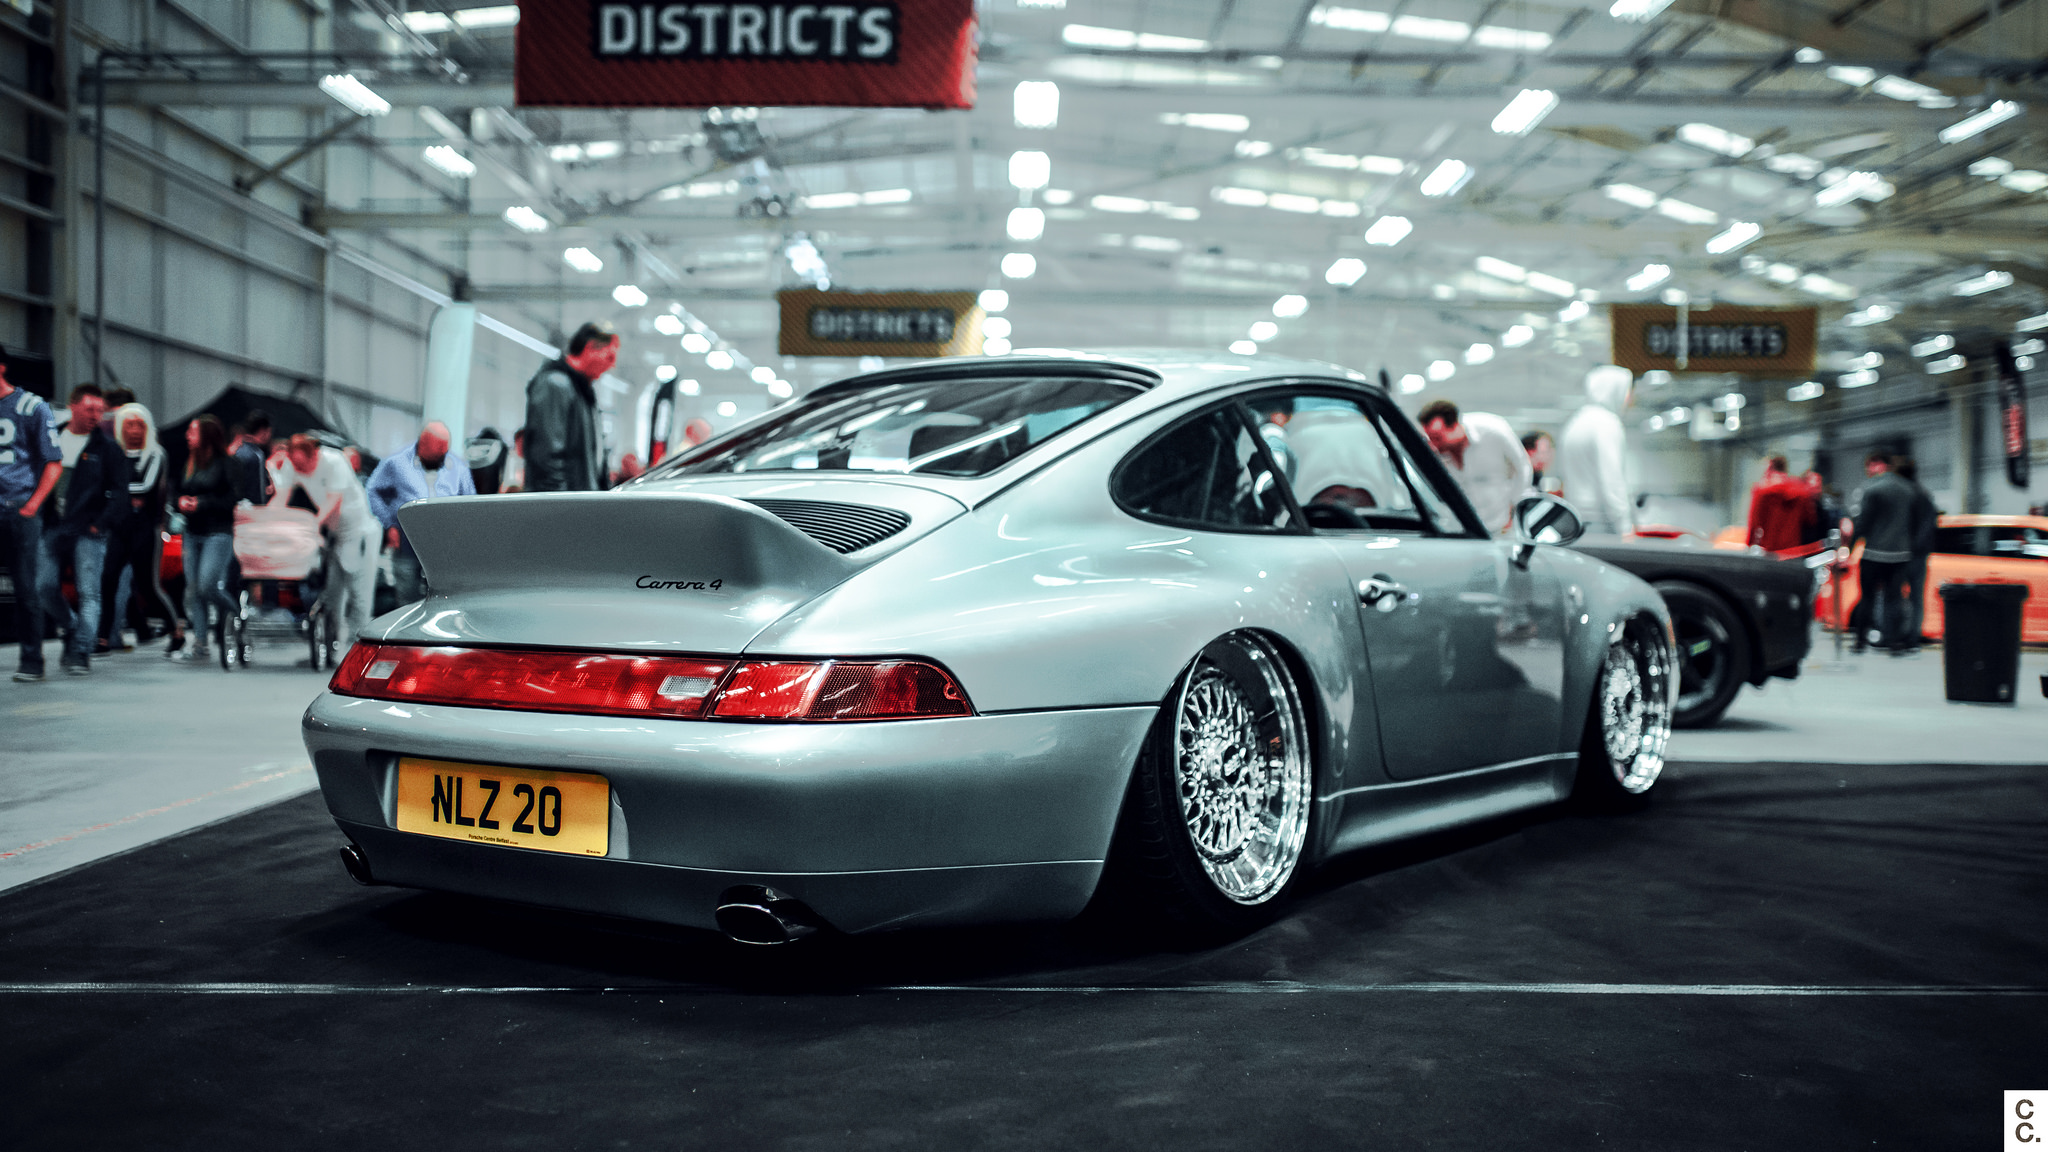 Low Porsche 911 Carrera 4 Stancenation Form Gt Function